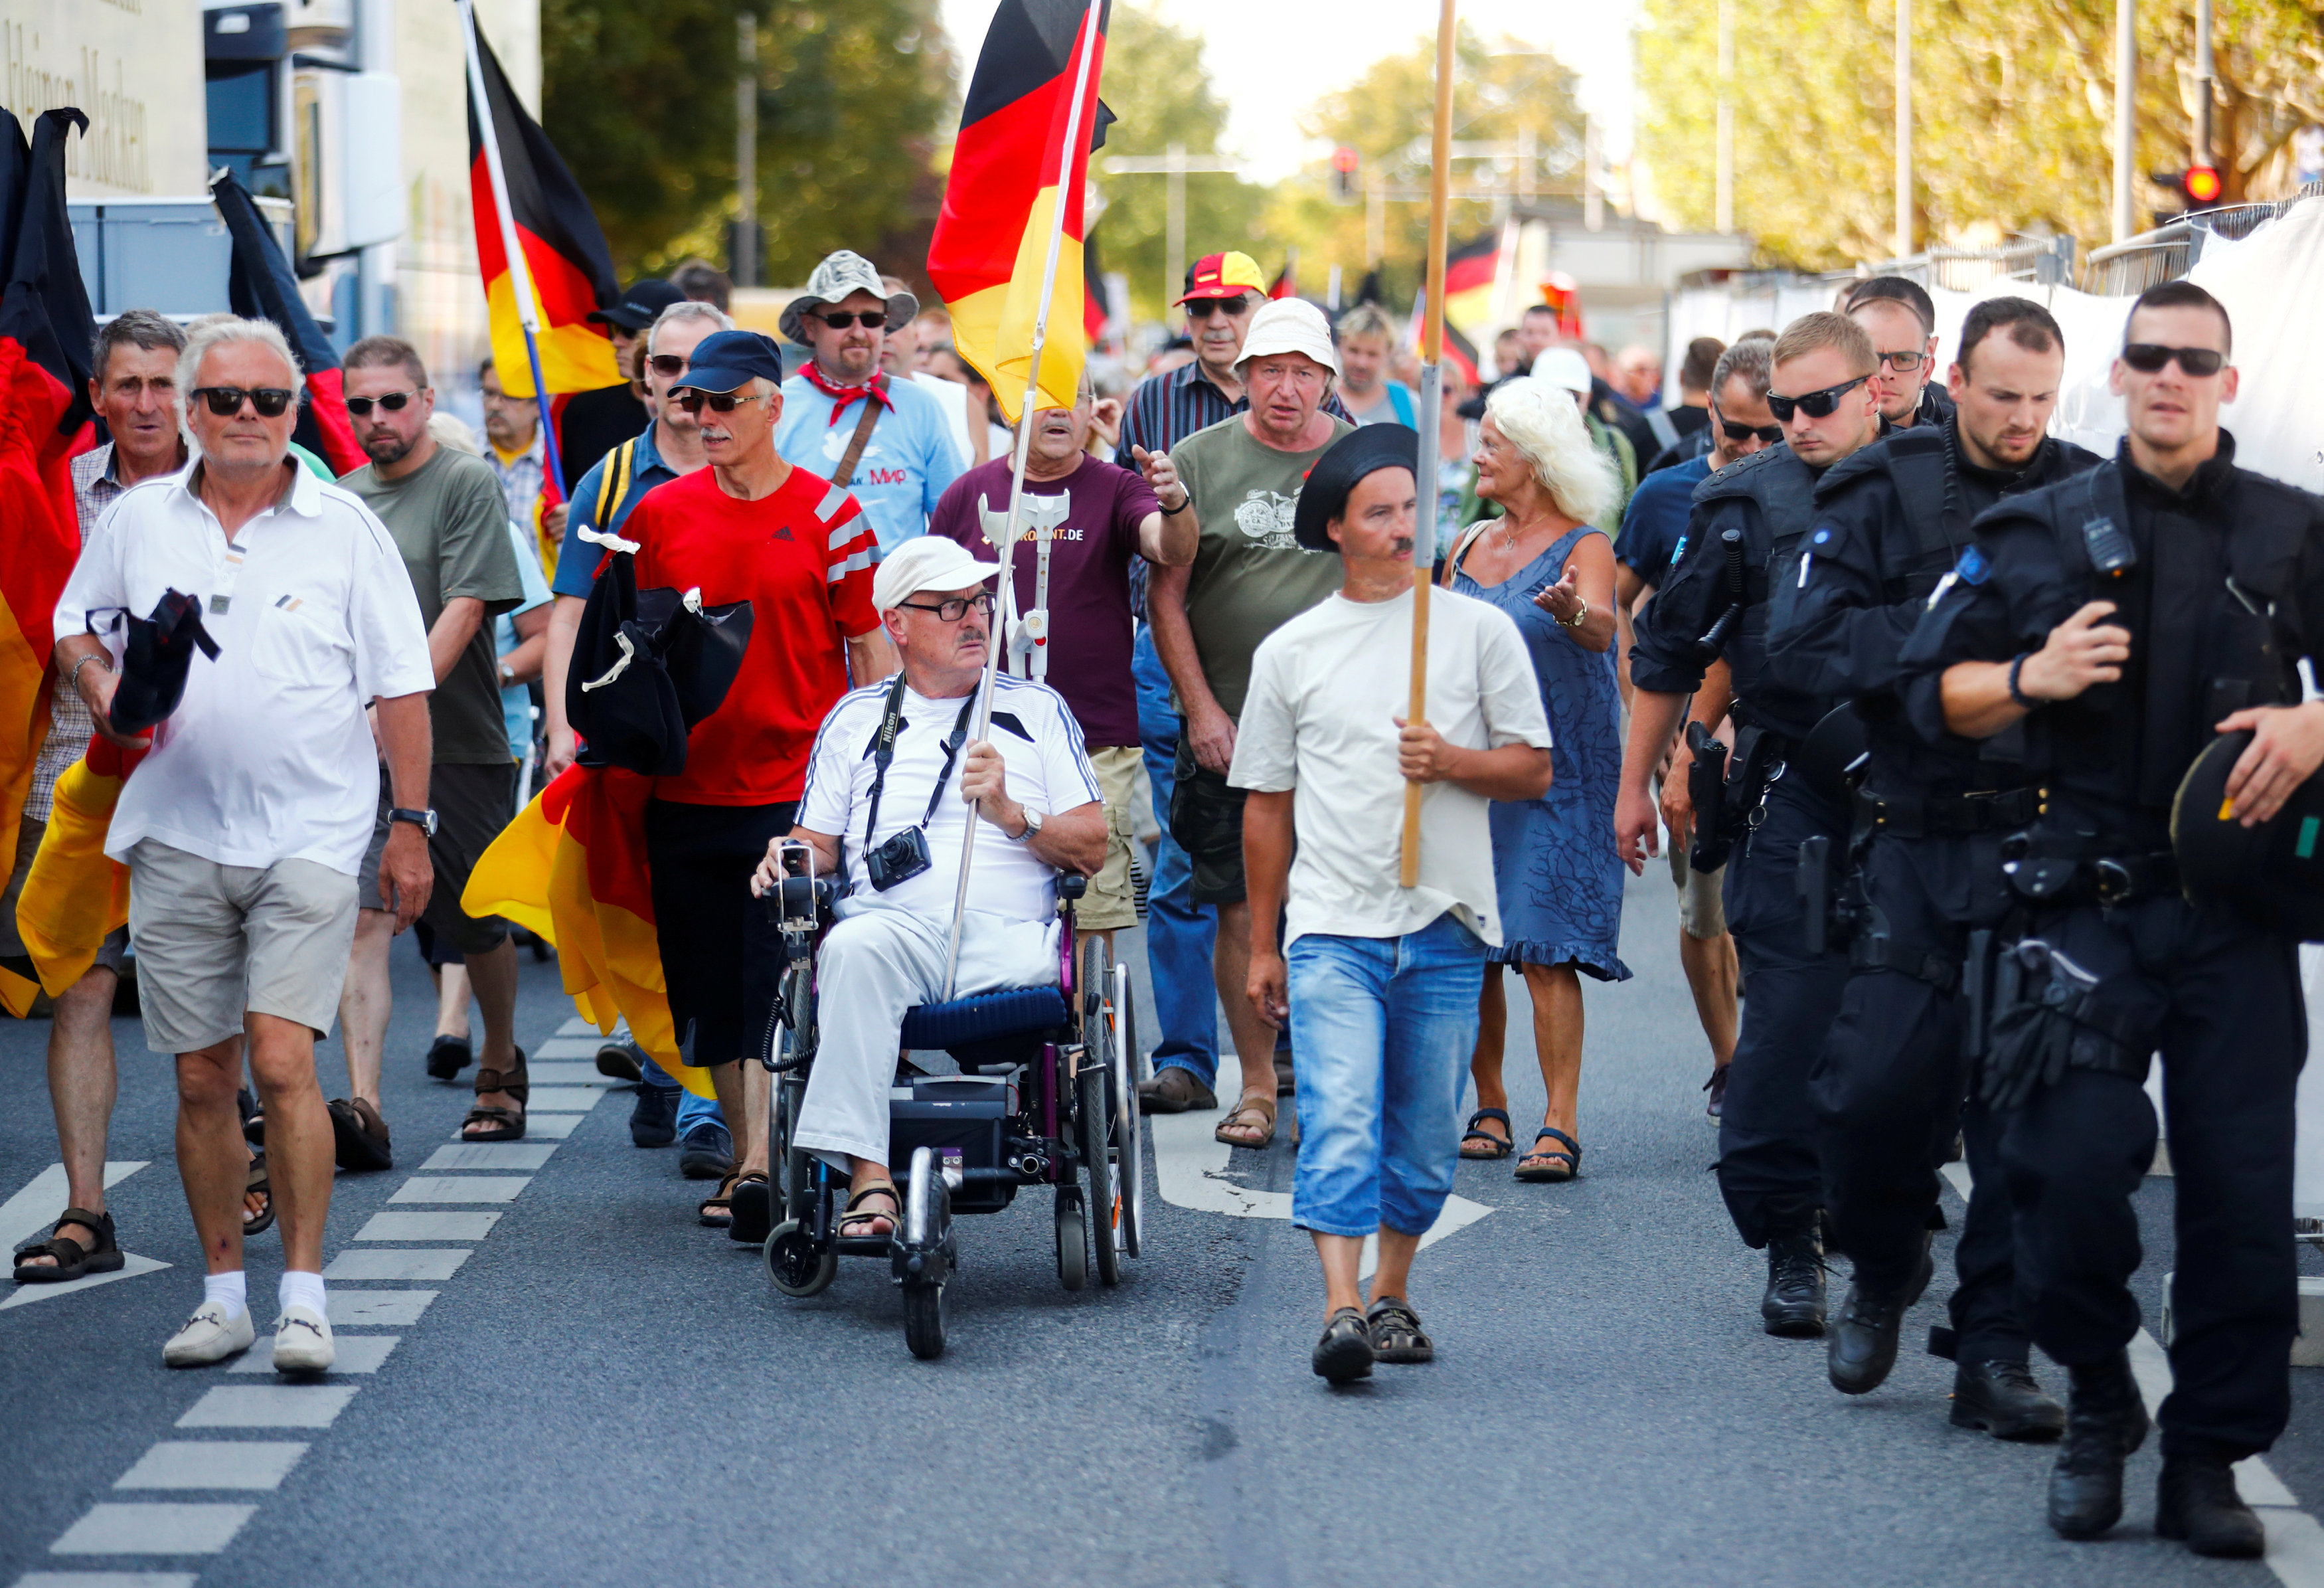 Germany: Two policemen suspended over Nazi salute